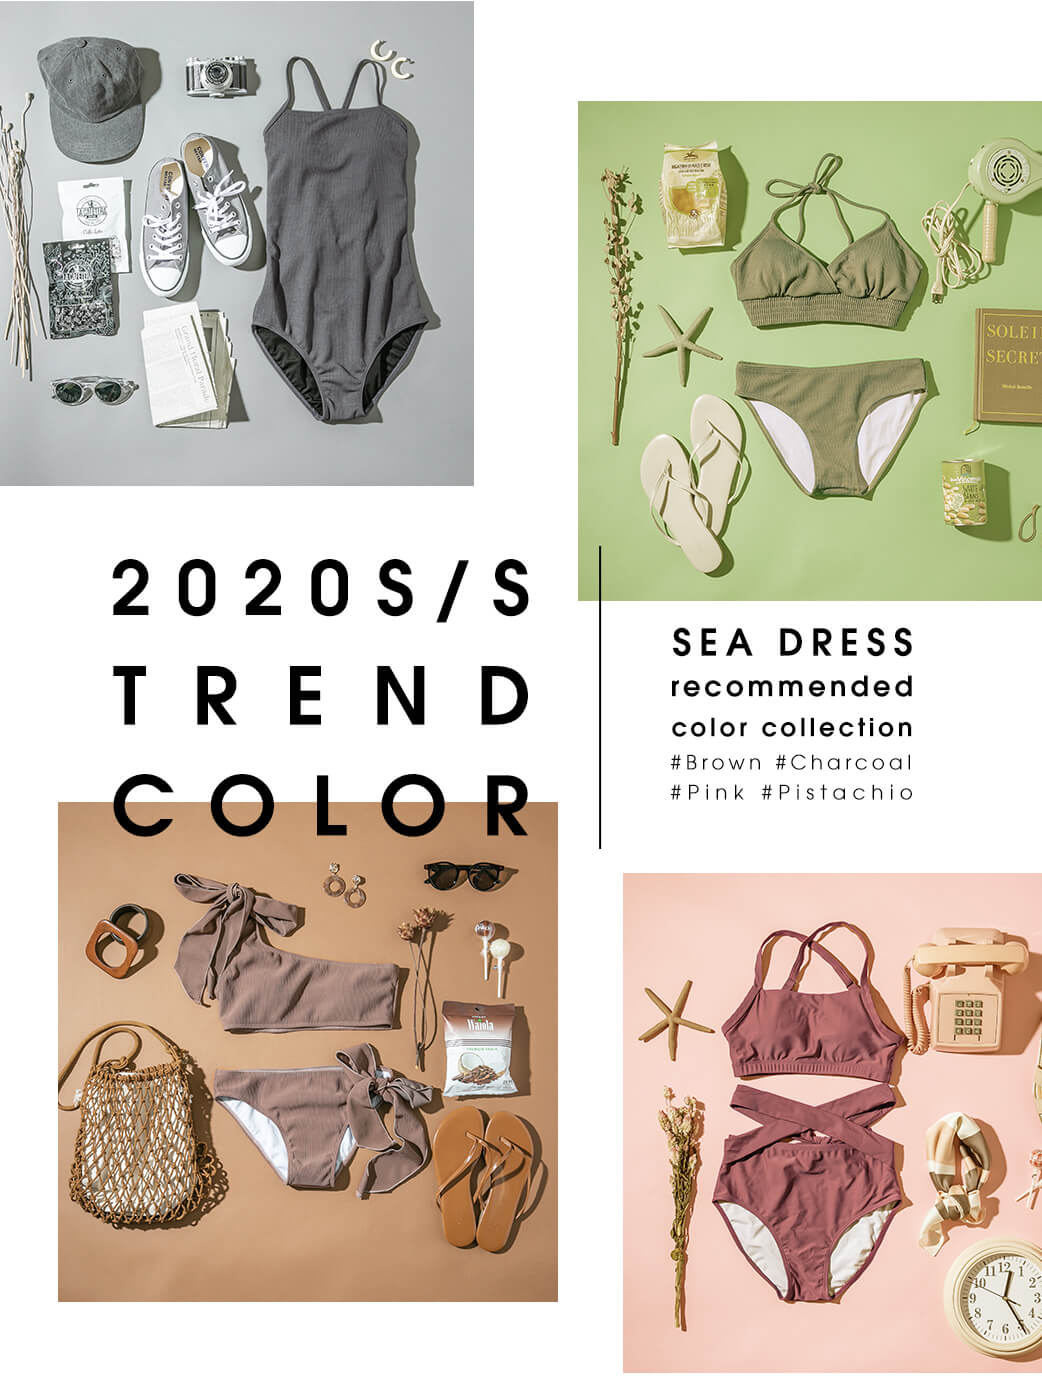 2020S/S TREND COLOR